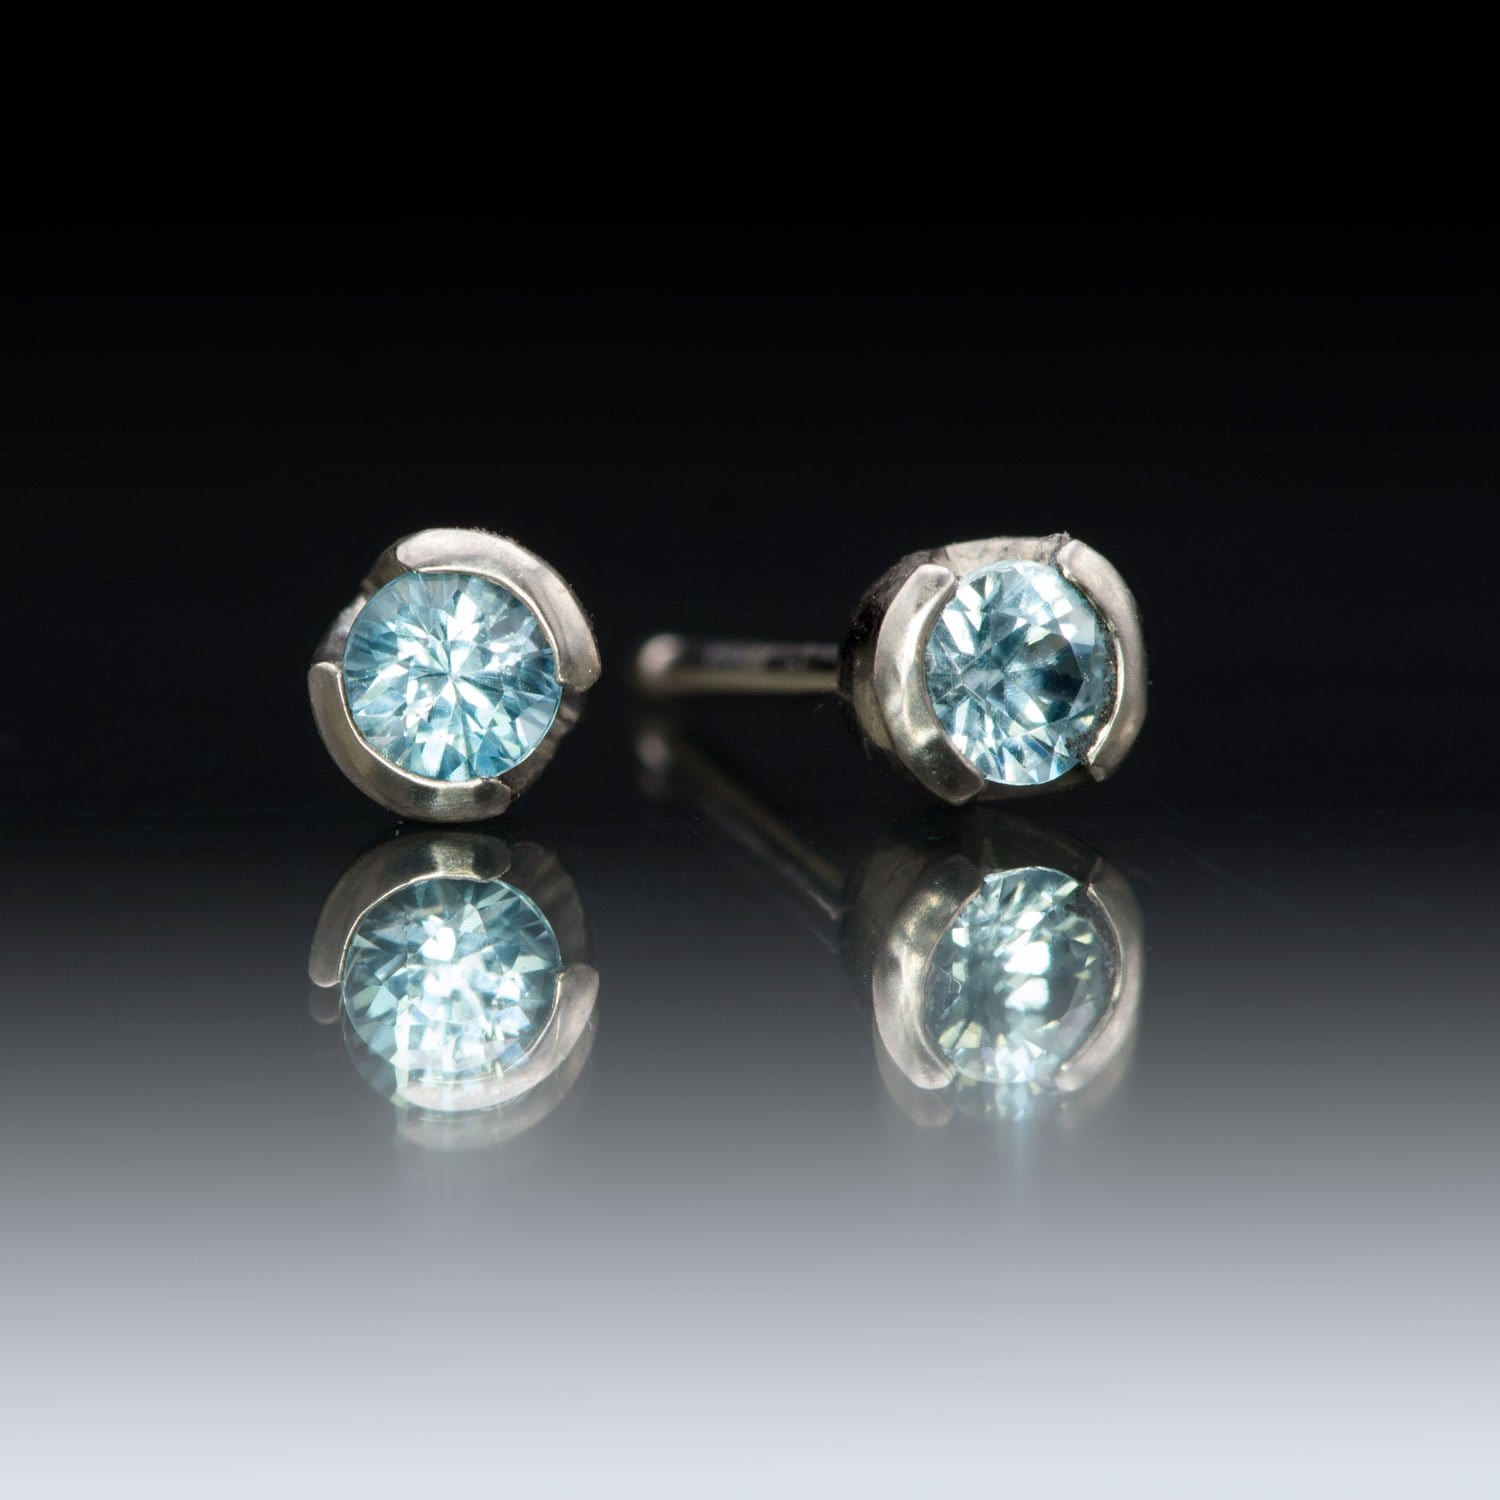 Round Blue Zircon Palladium Half Bezel Studs Earrings, Ready to Ship